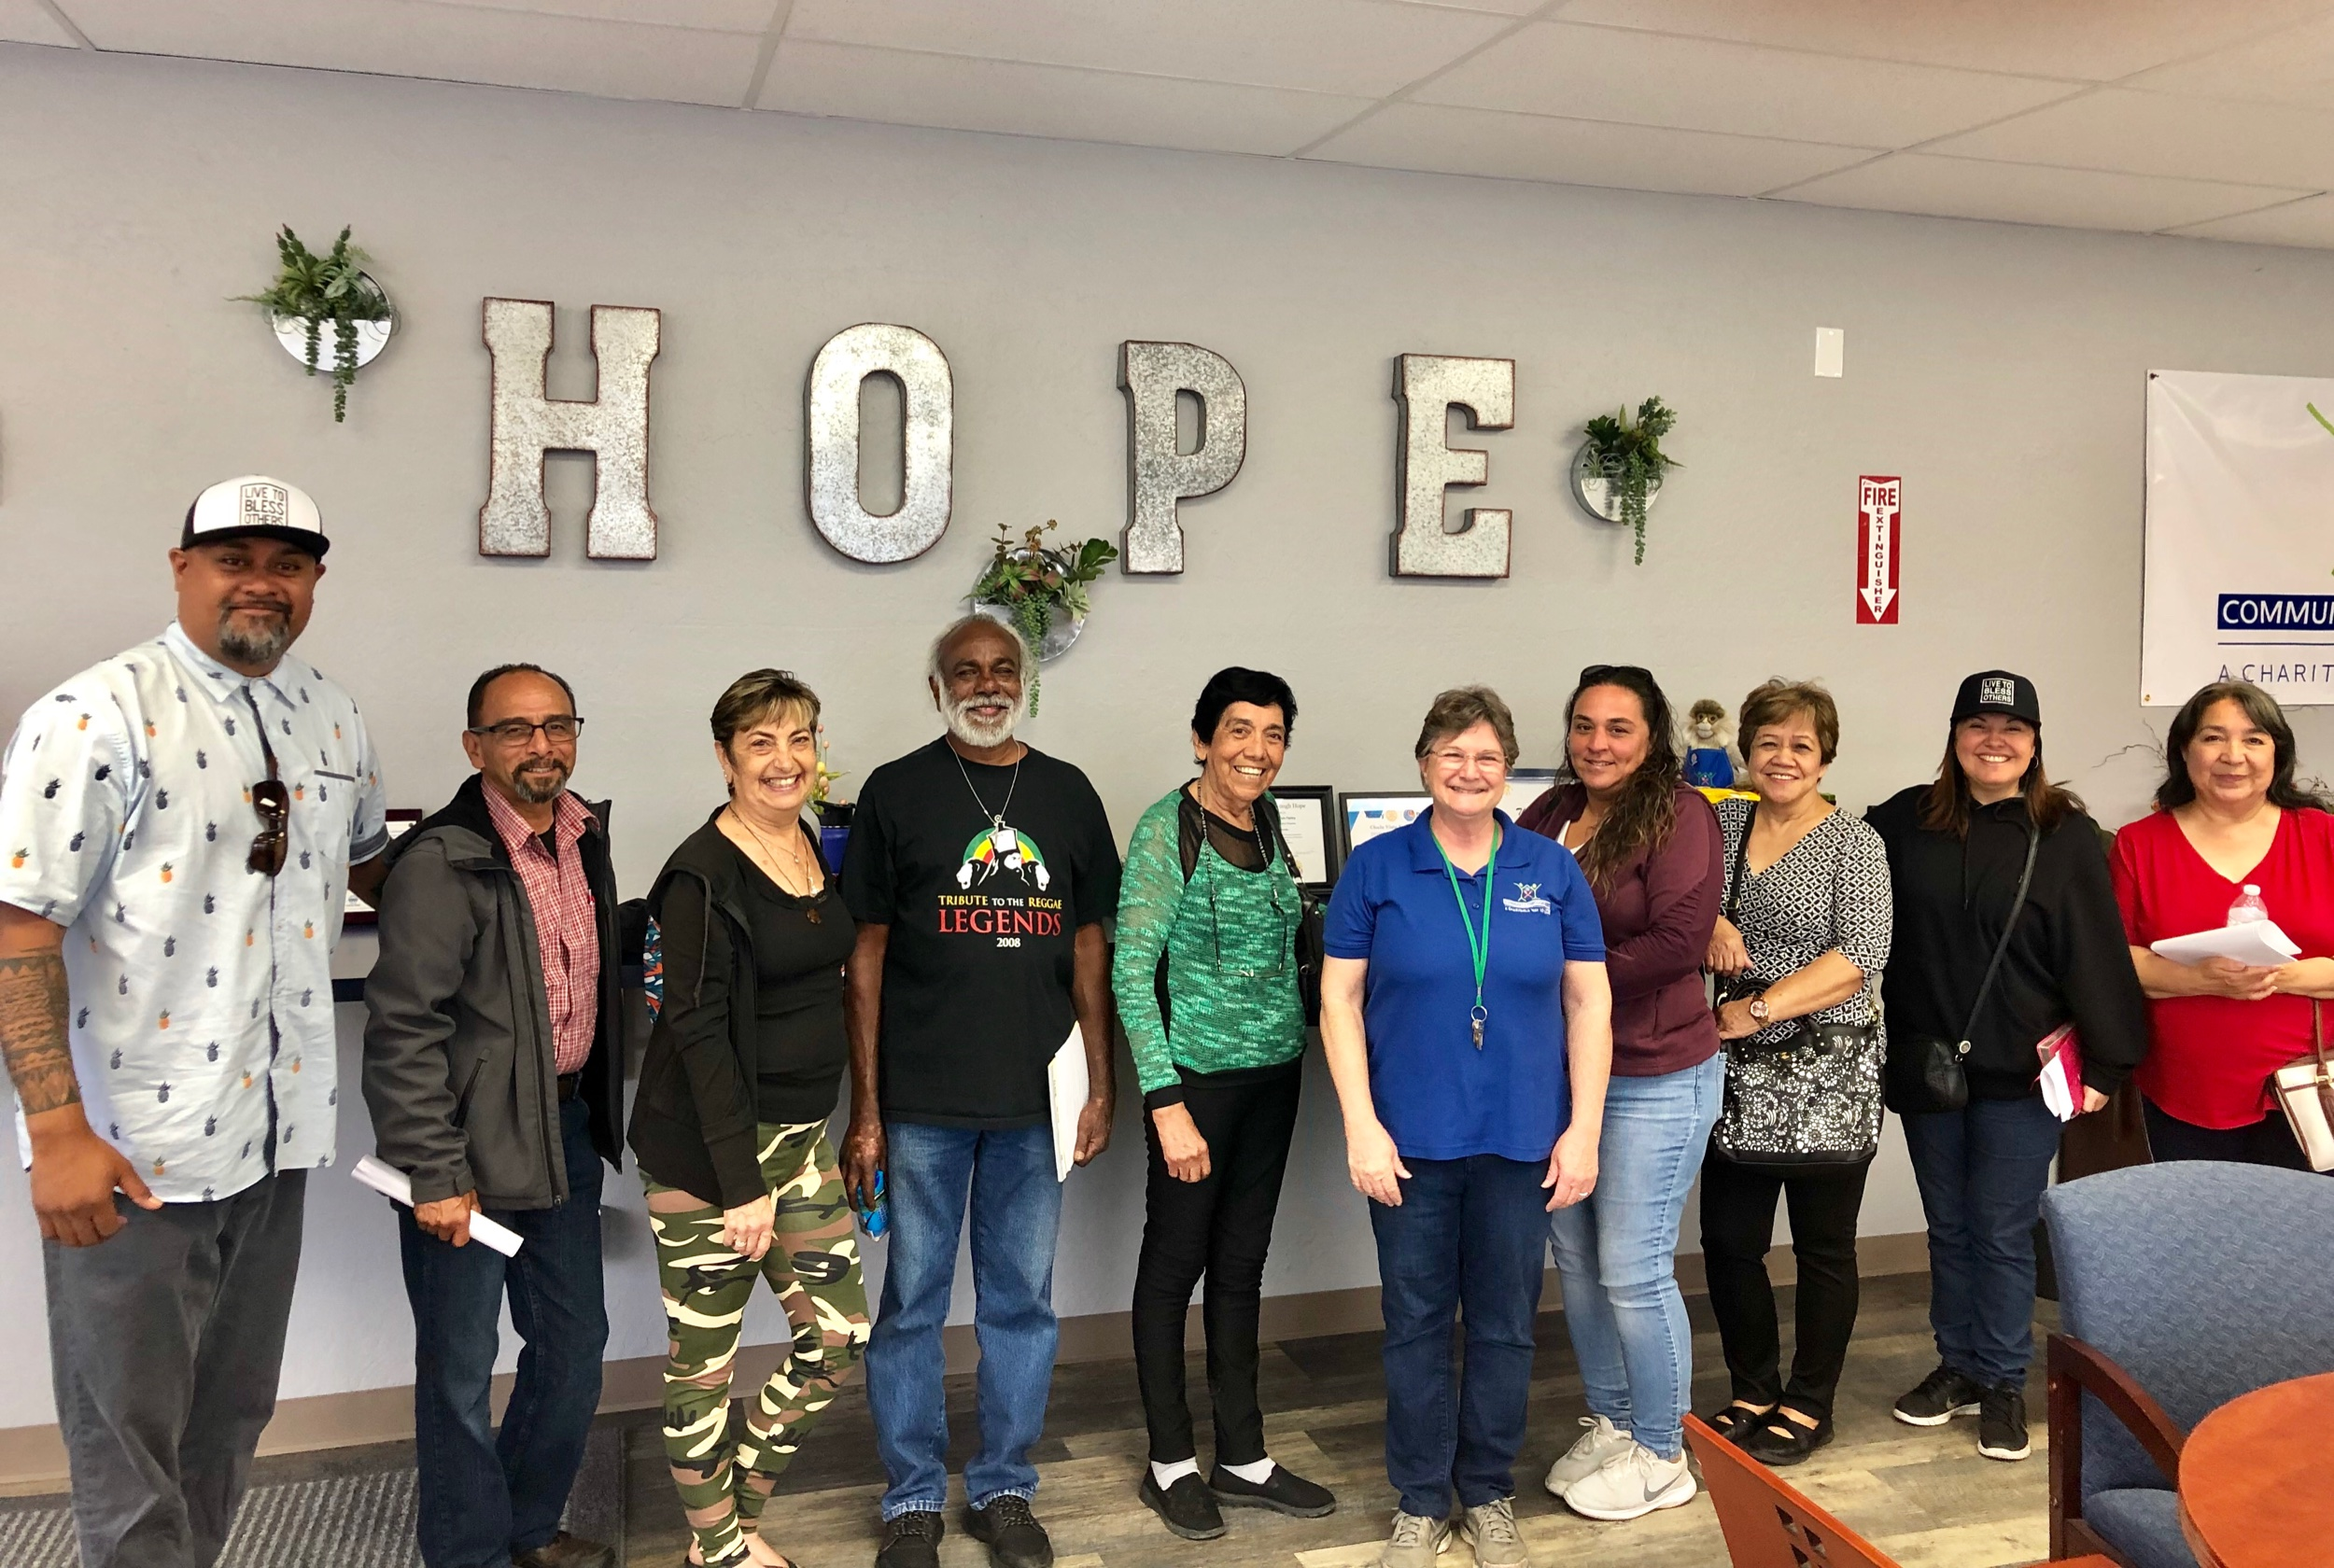 South Bay SDA Partnering with Community Through Hope